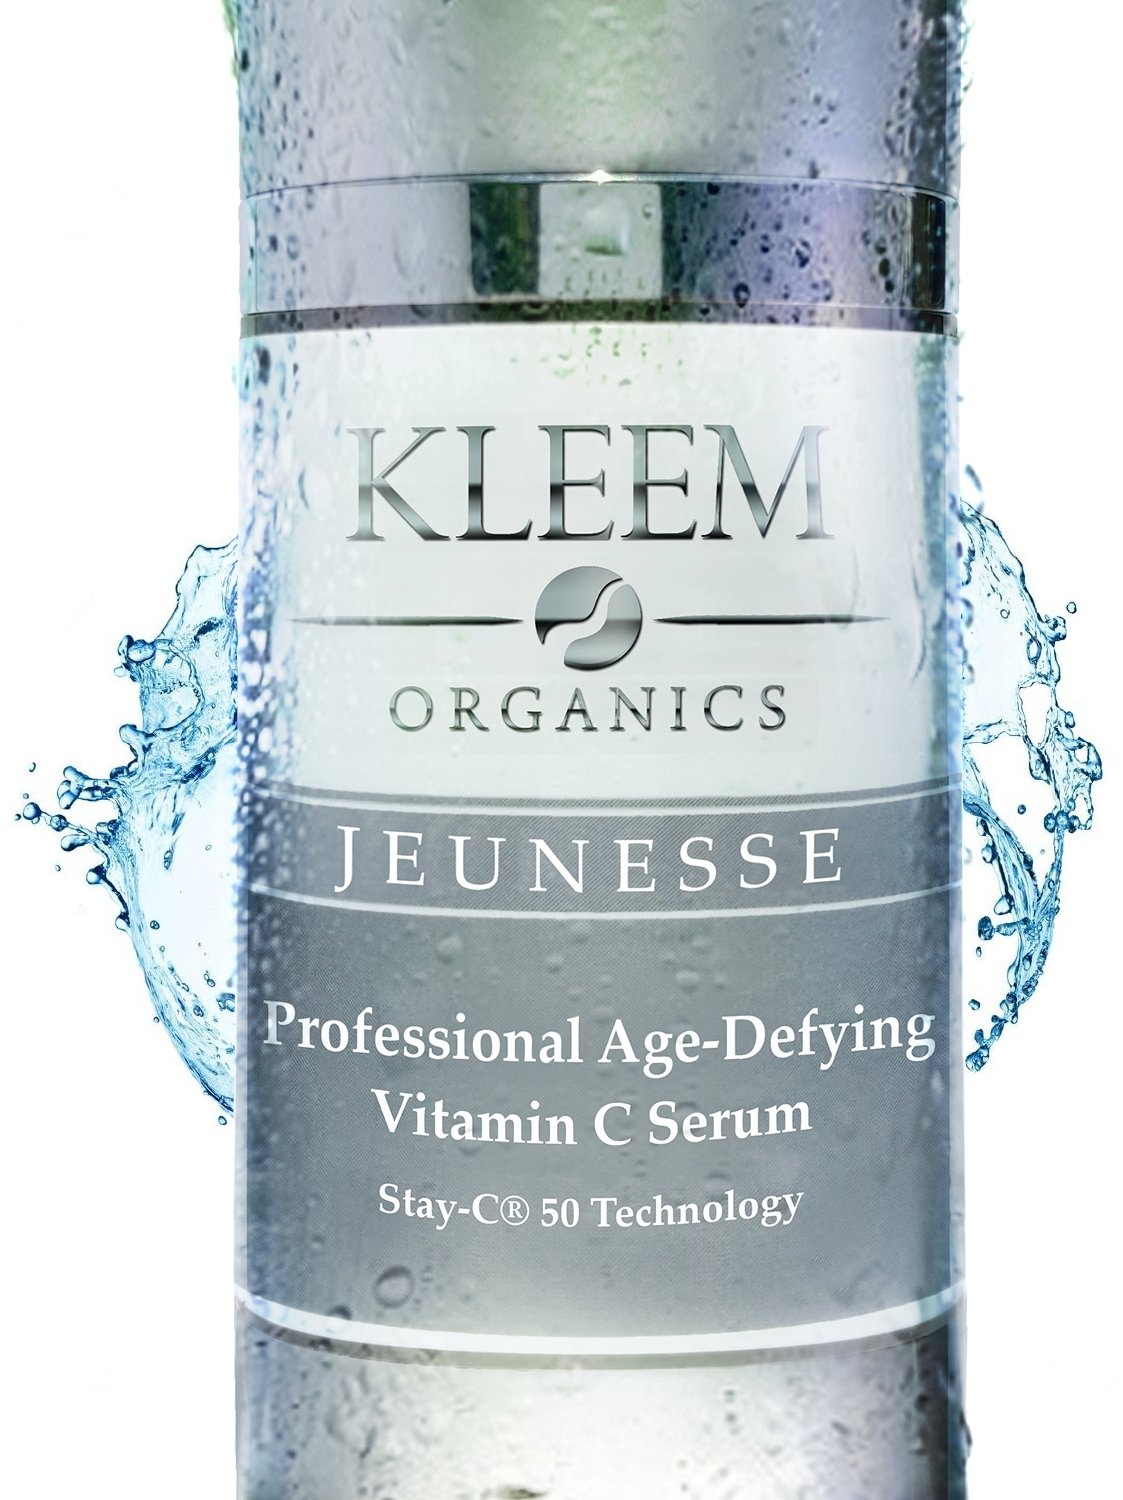 ORGANIC Vitamin C Serum for Face, Neck & Décolleté for Anti Aging, Age Spots, Acne & Neck Firming - BEST Anti Wrinkle Facial Treatment Serum with Natural Ingredients to Restore & Boost Collagen - 1 oz by Kleem Organics